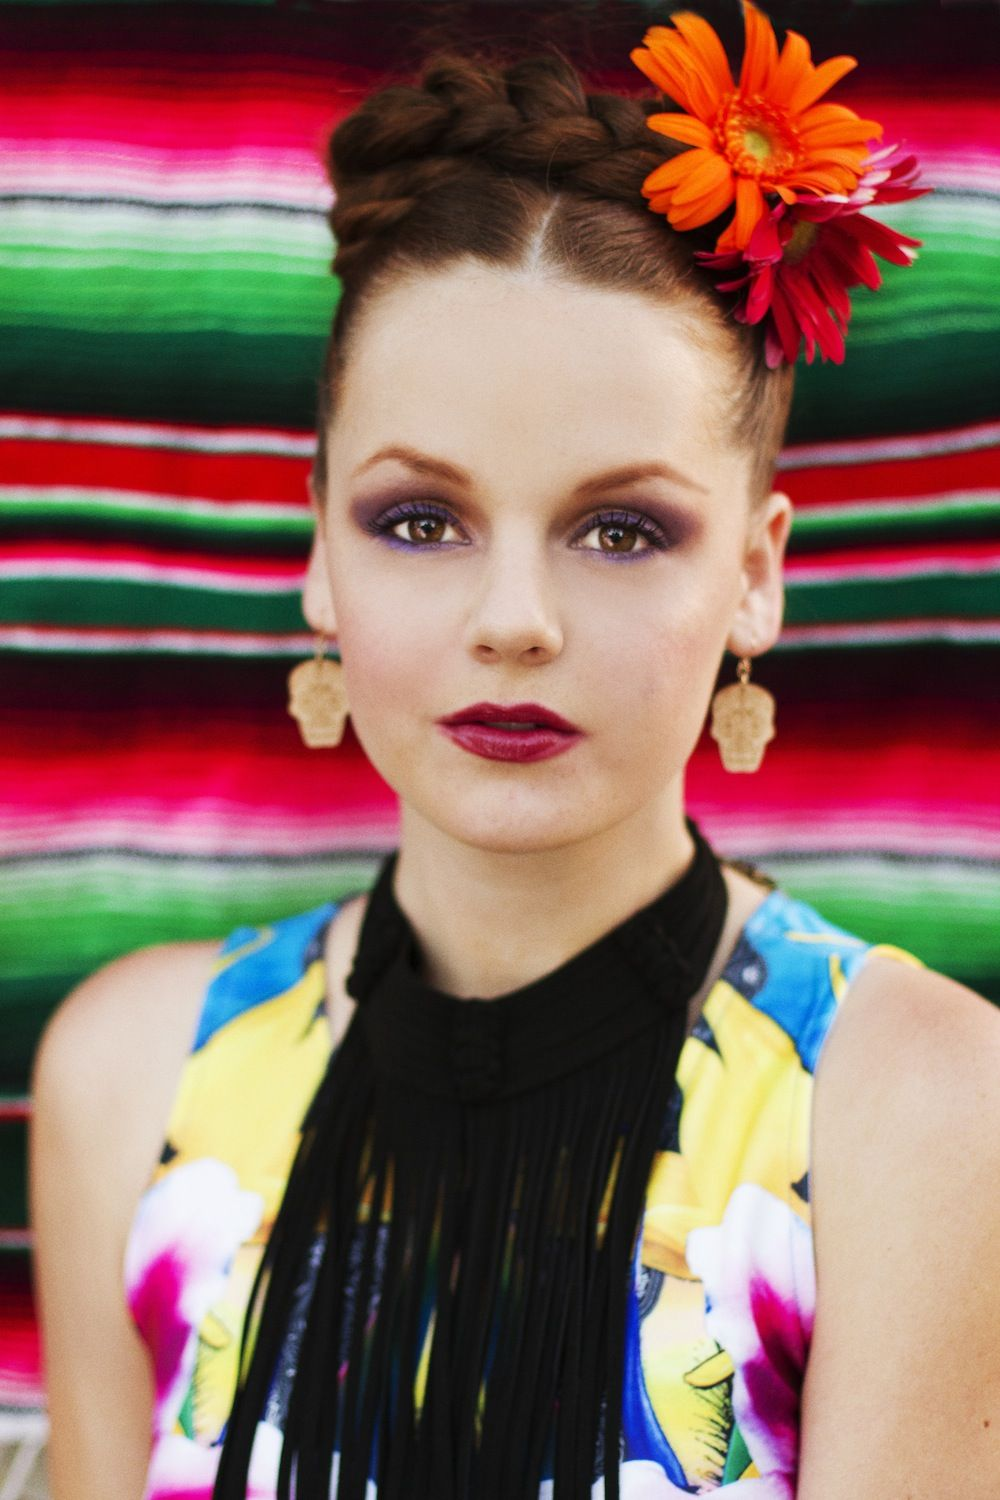 Cinco de mayo editorial spanish and mexican inspired fashion photo